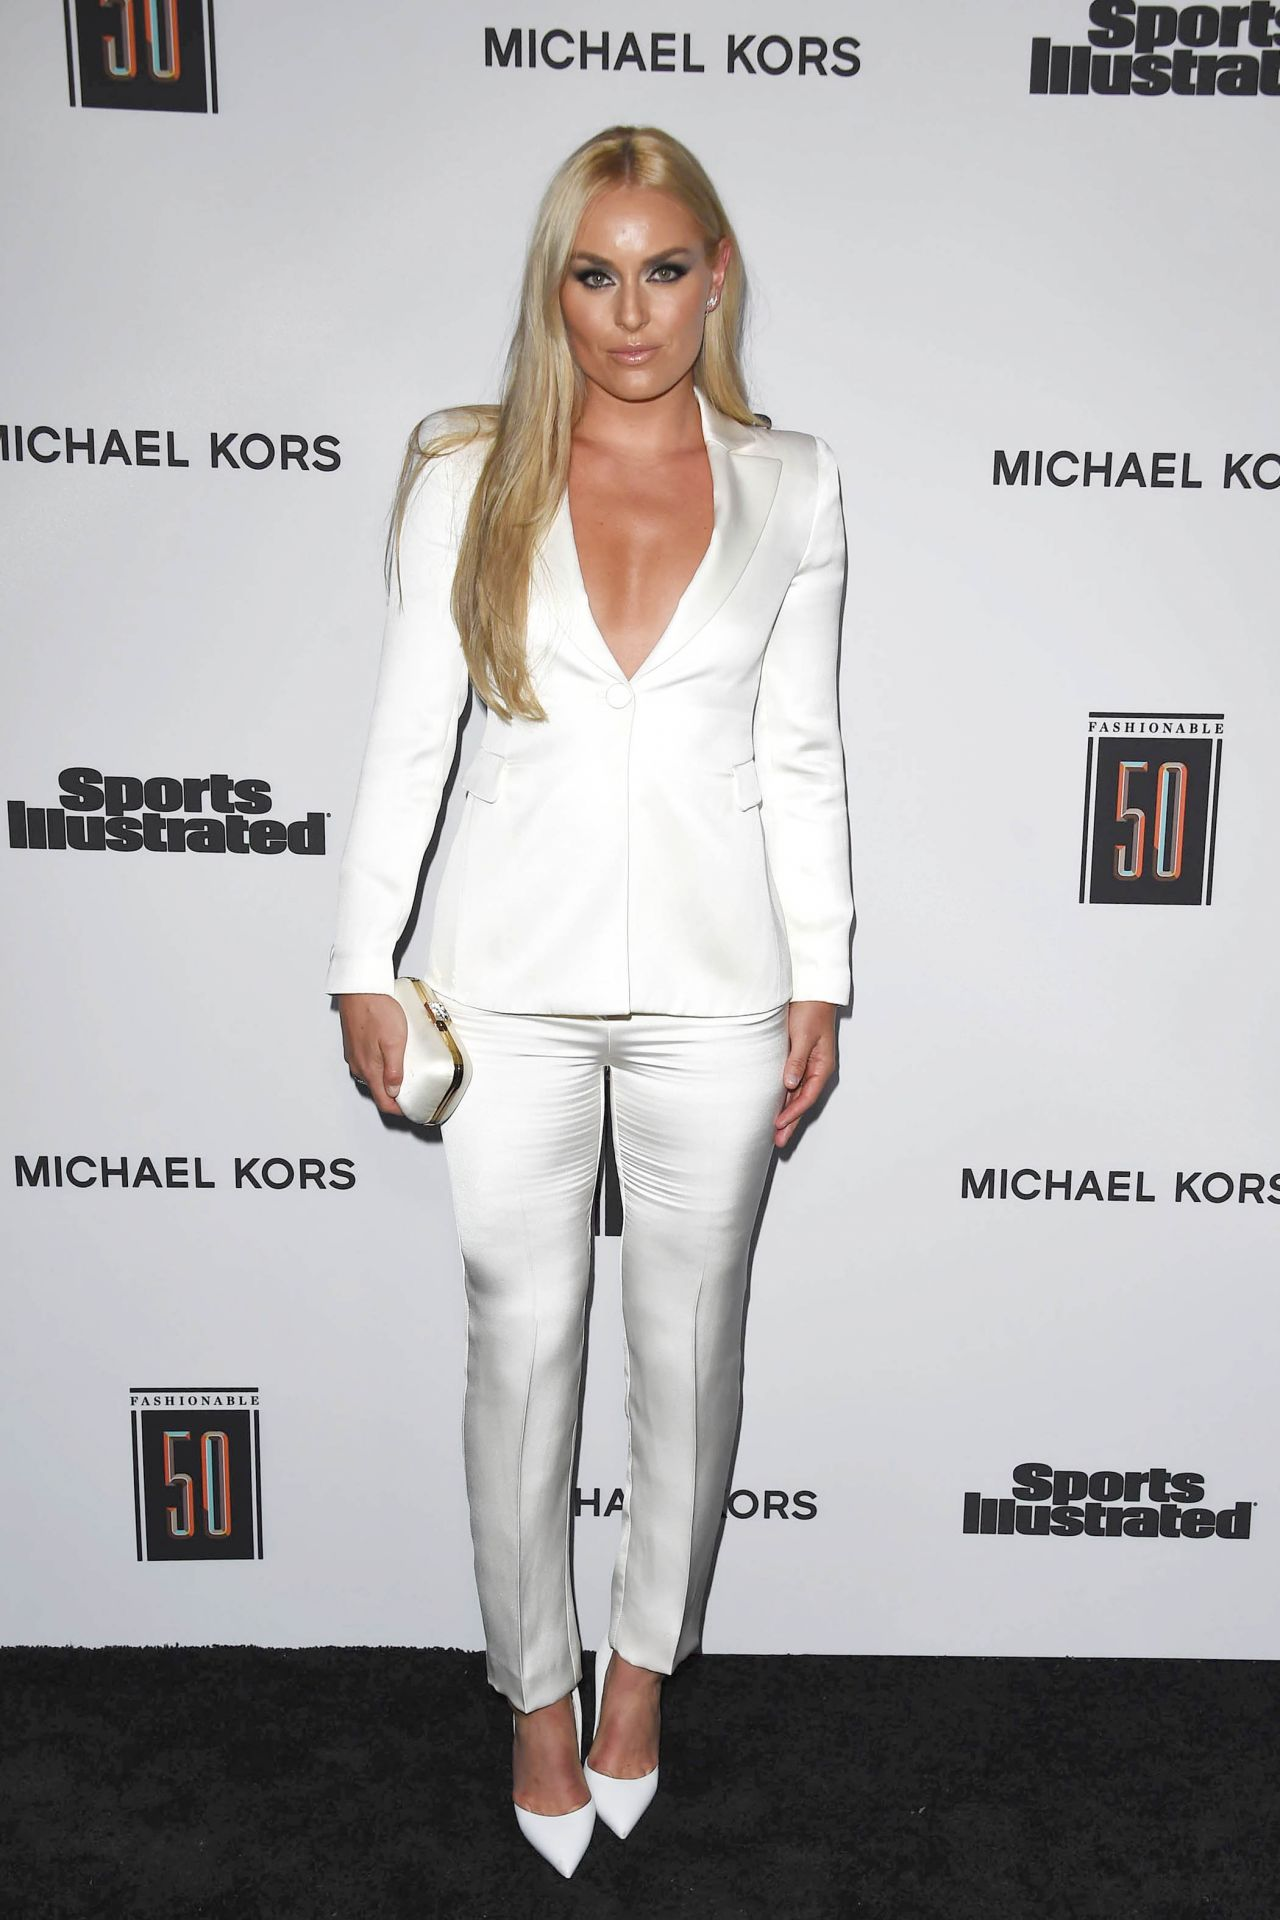 Lindsey Vonn Si Fashionable 50 In Hollywood 07 18 2017